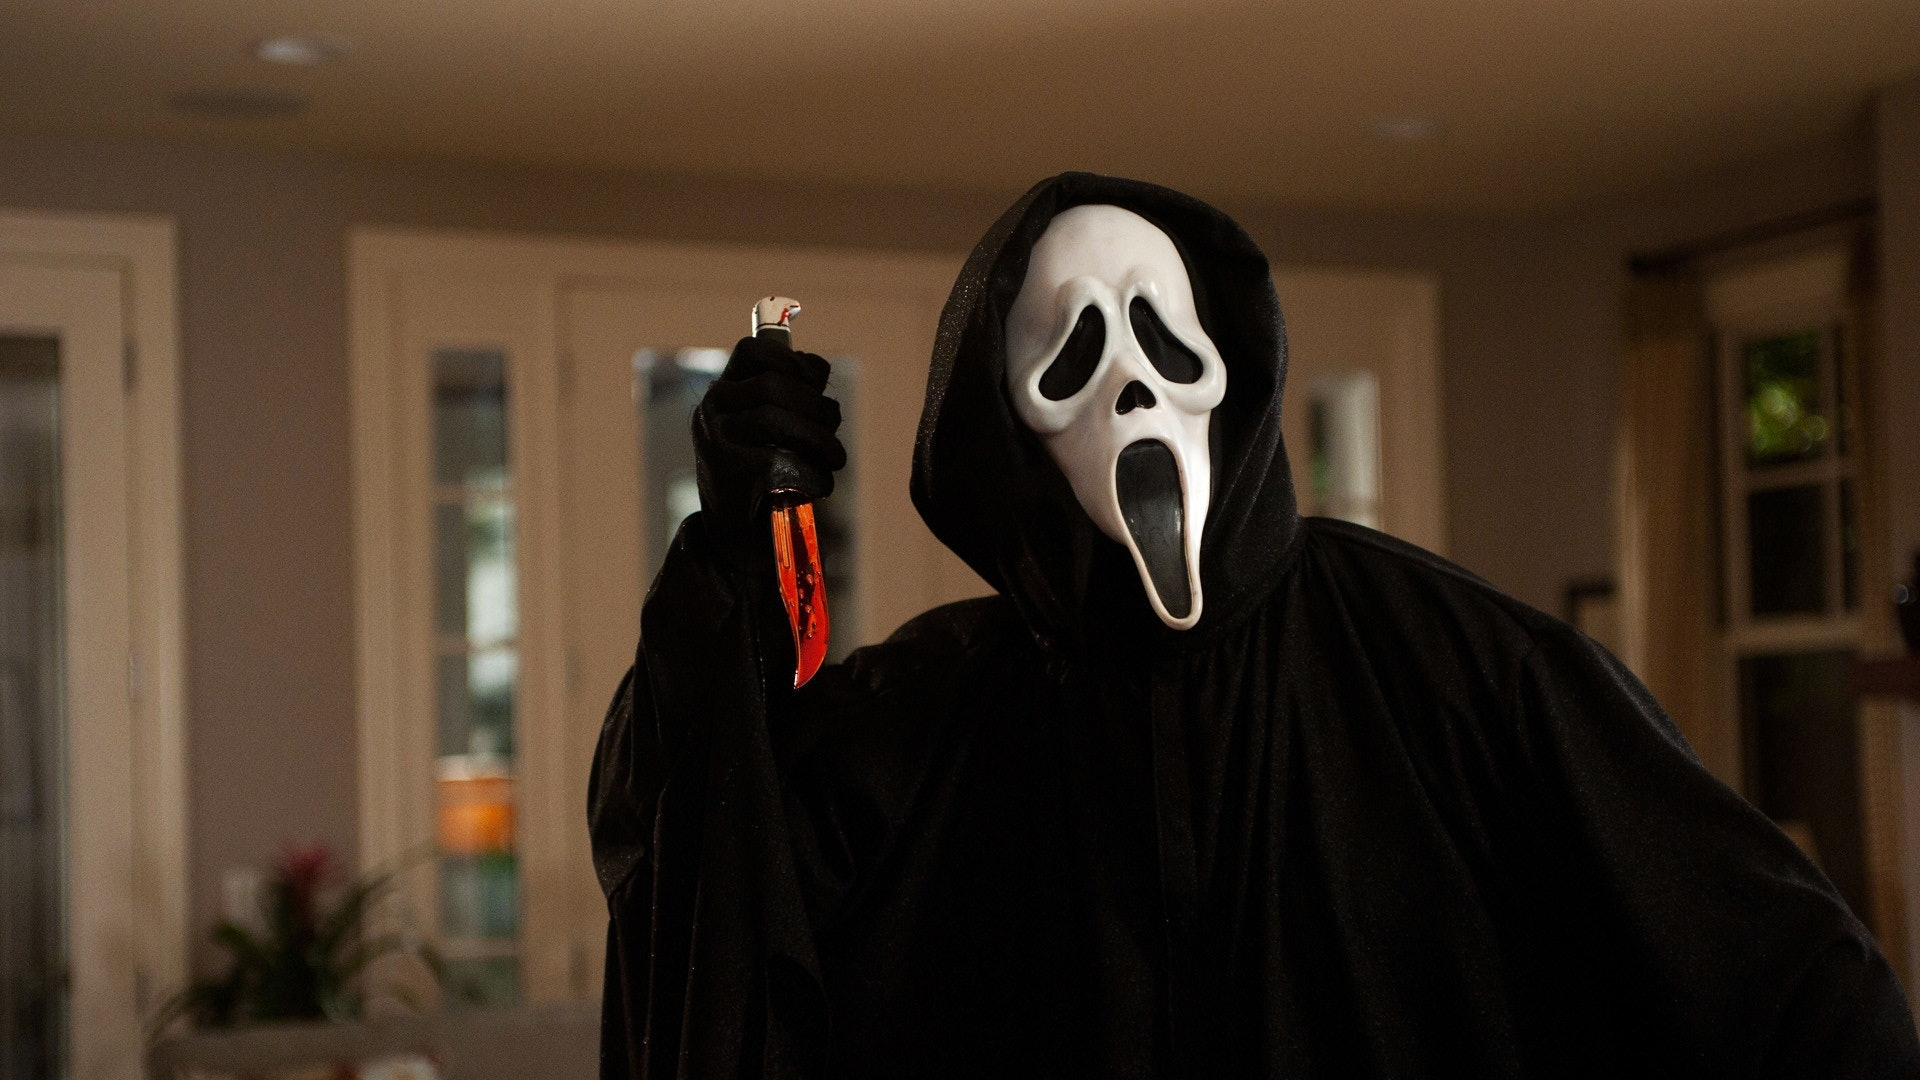 11 Scary Movie,Themed Halloween Party Ideas To Try This Year